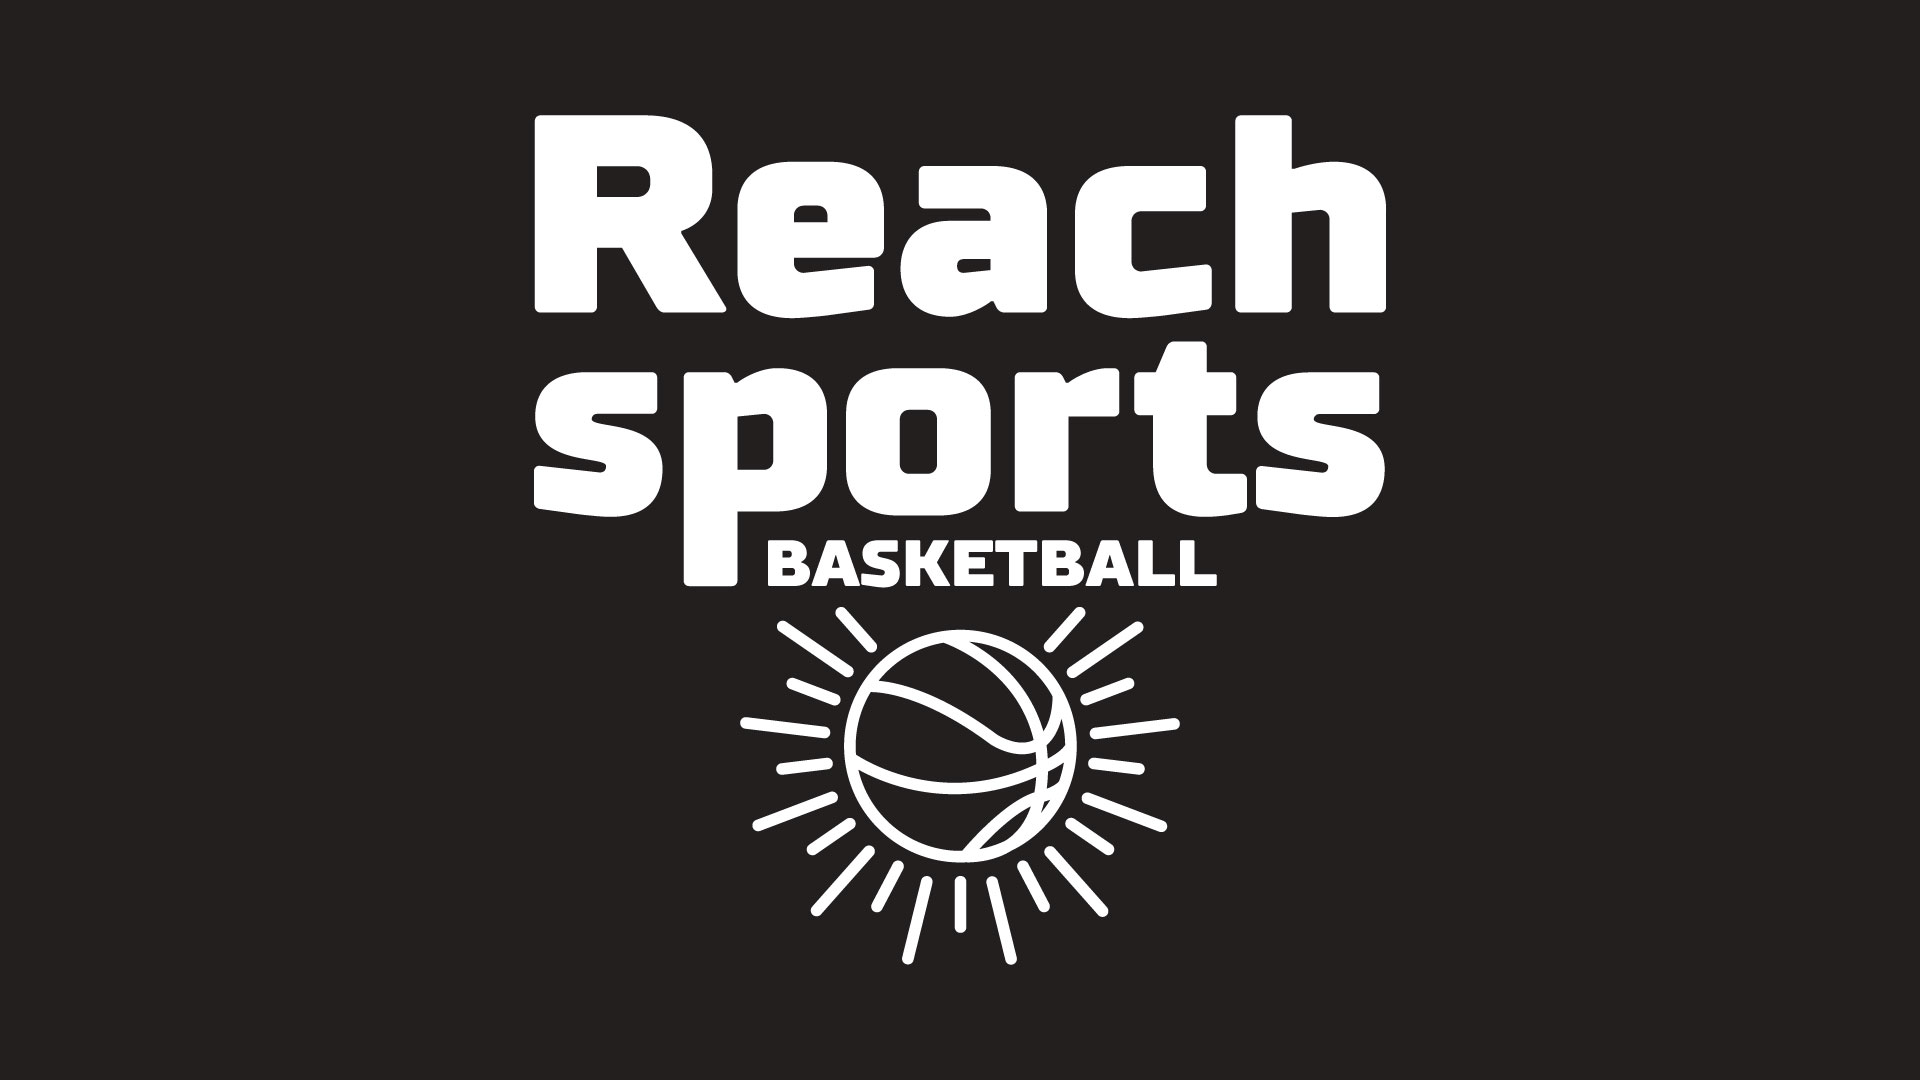 Reachsports basketball weblogo